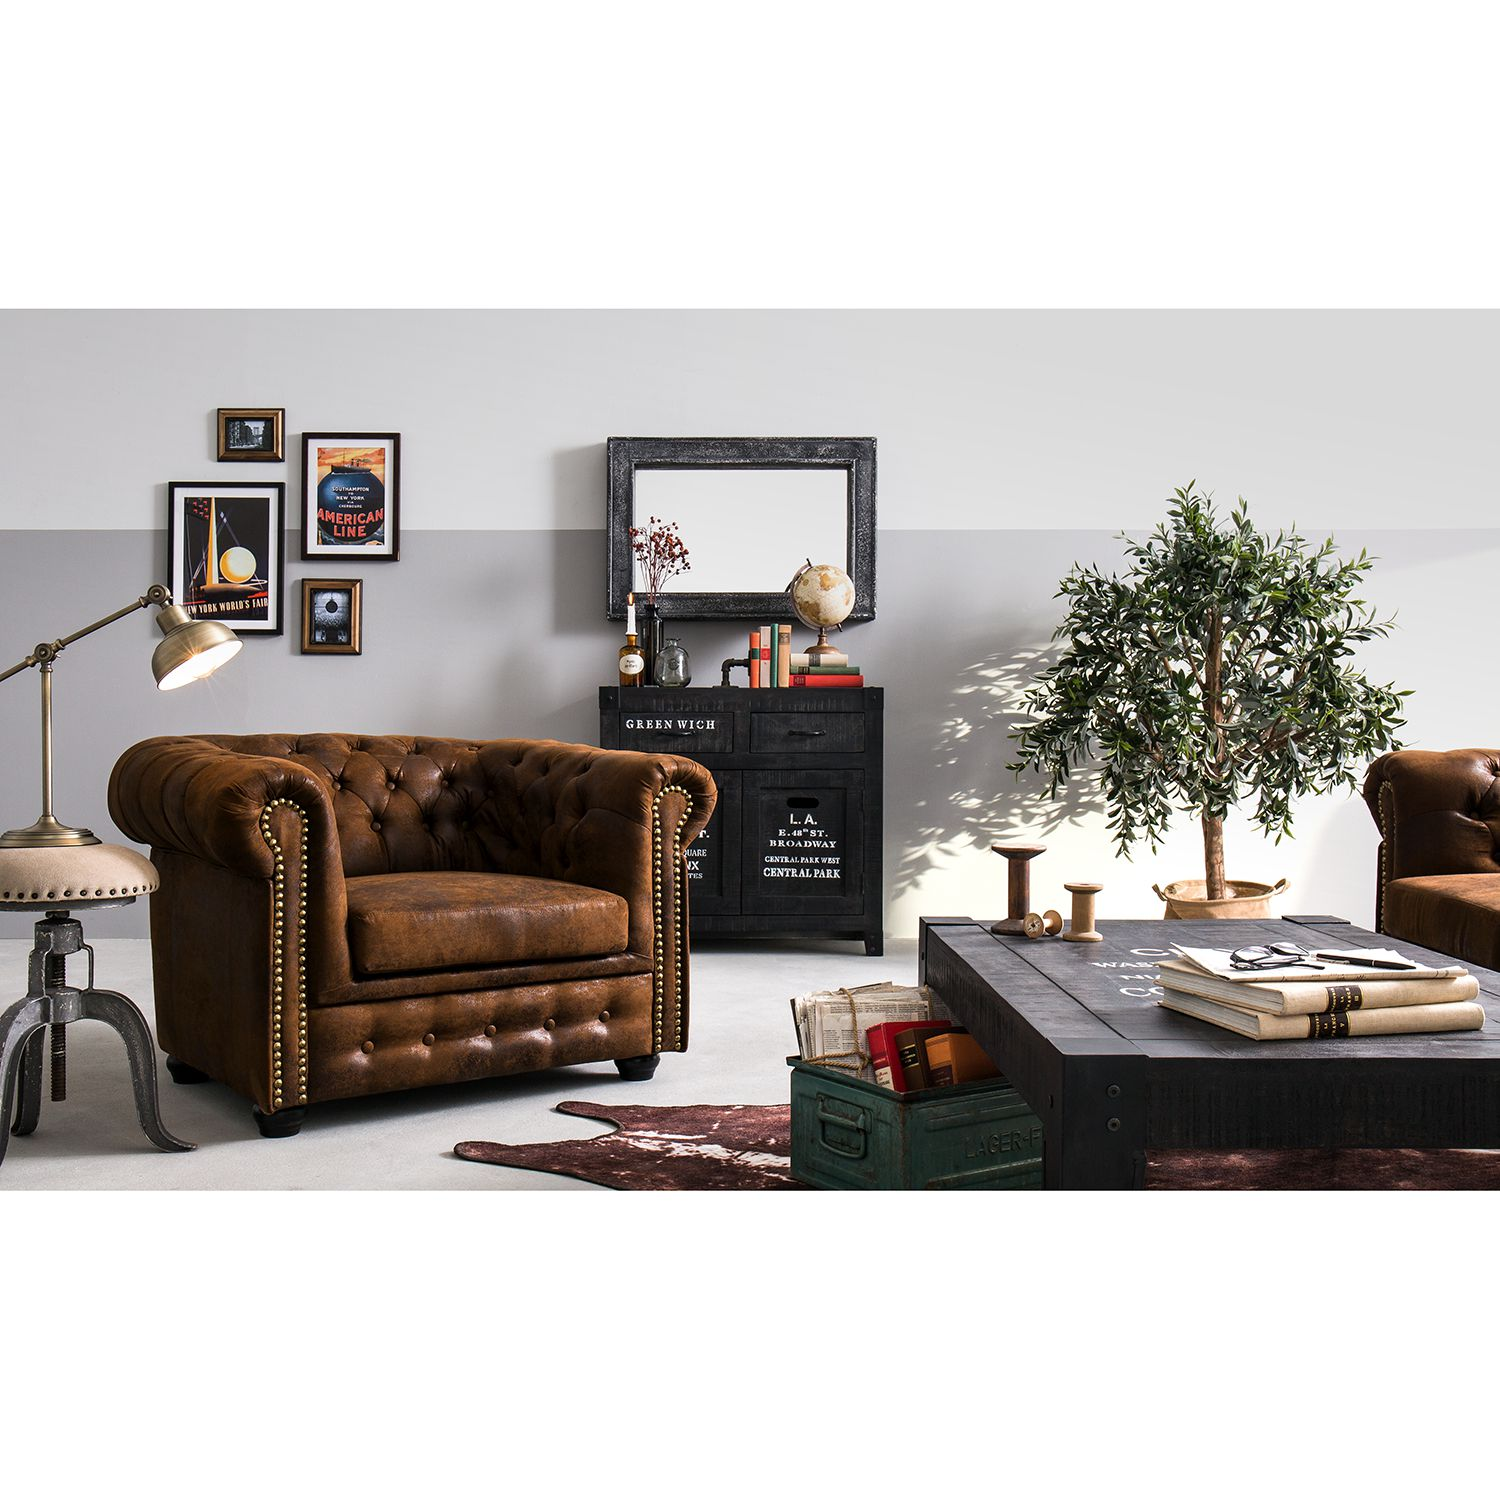 Home24 Fauteuil Torquay, ars manufacti